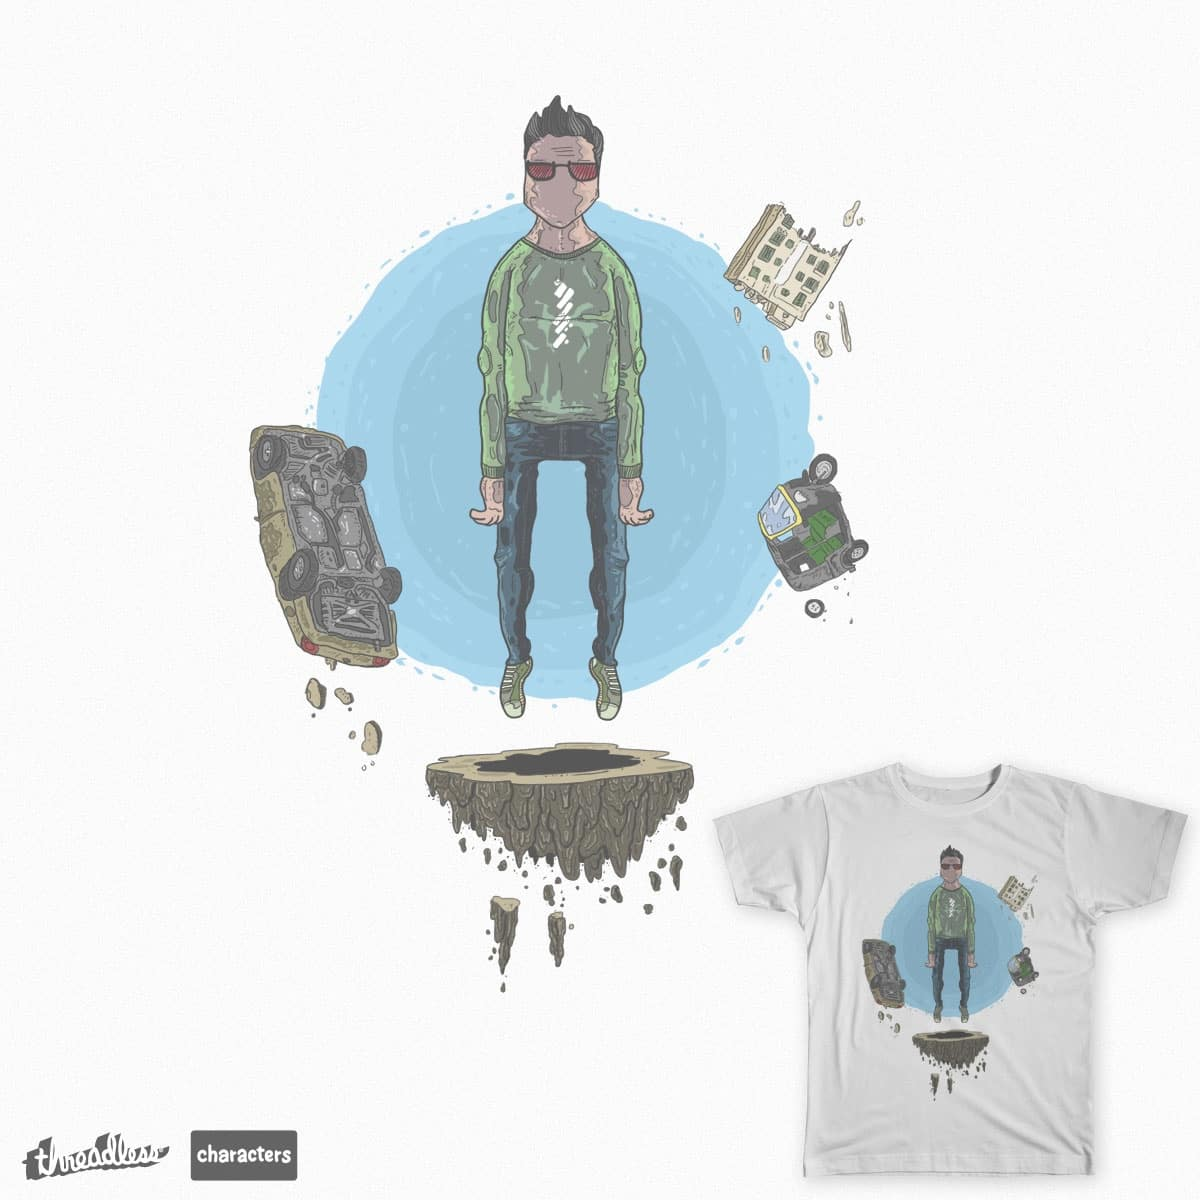 stranger  by MokhtarZain on Threadless